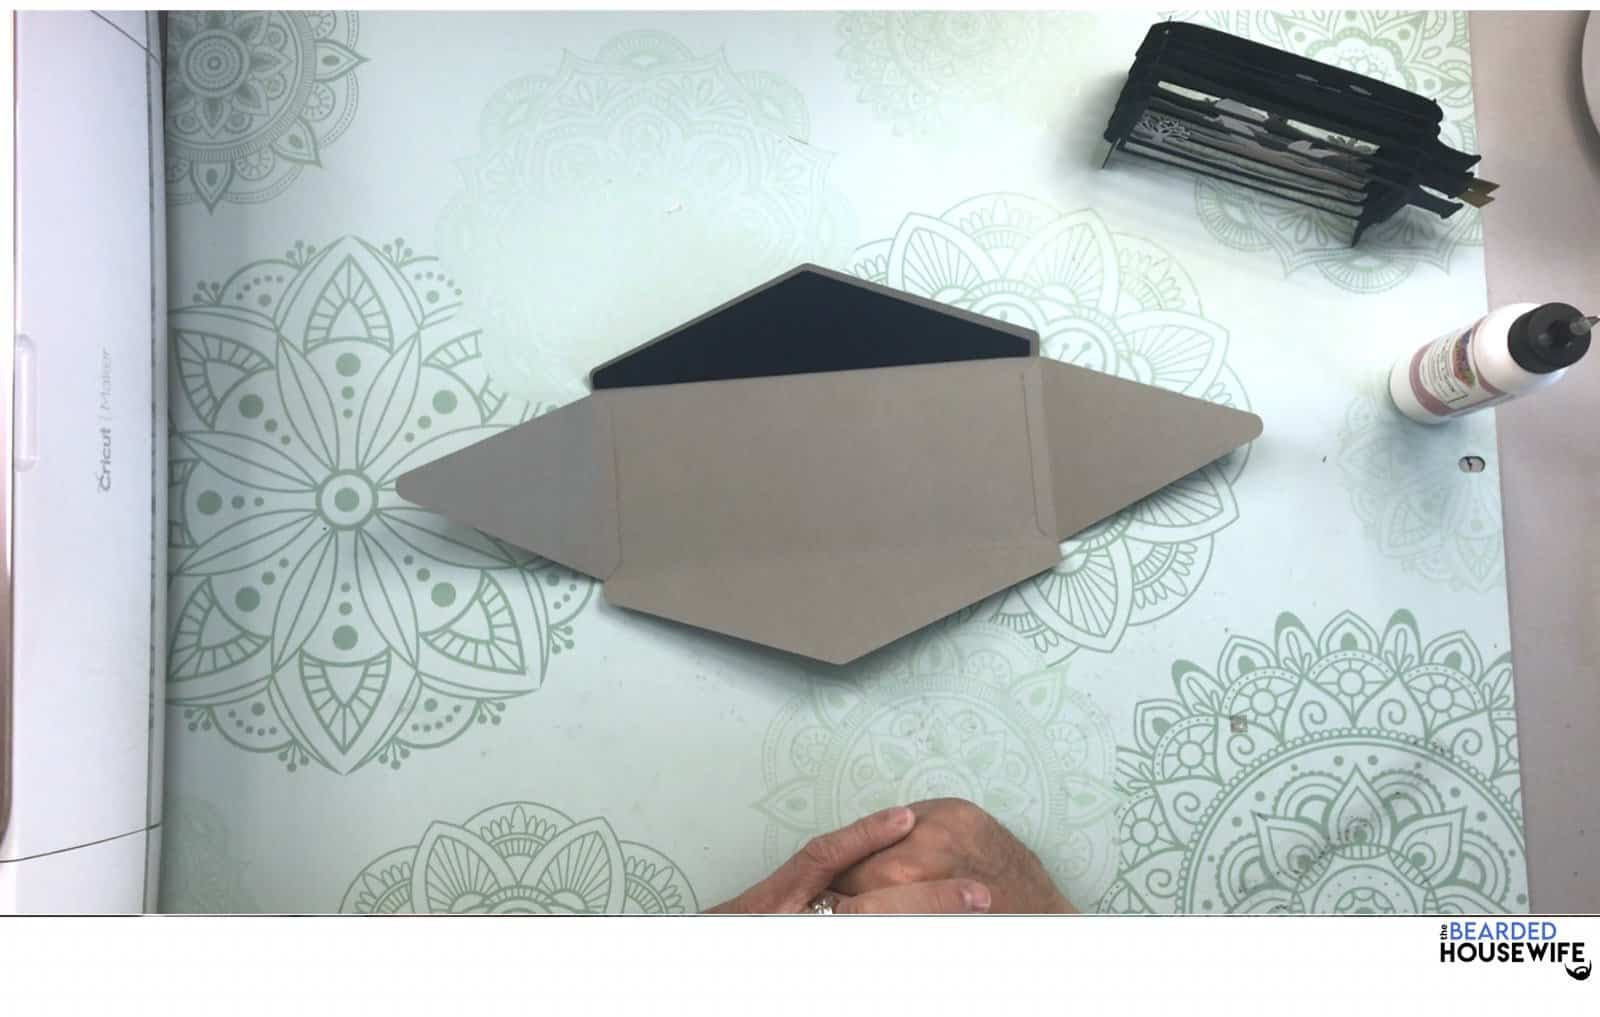 your envelope will look like this